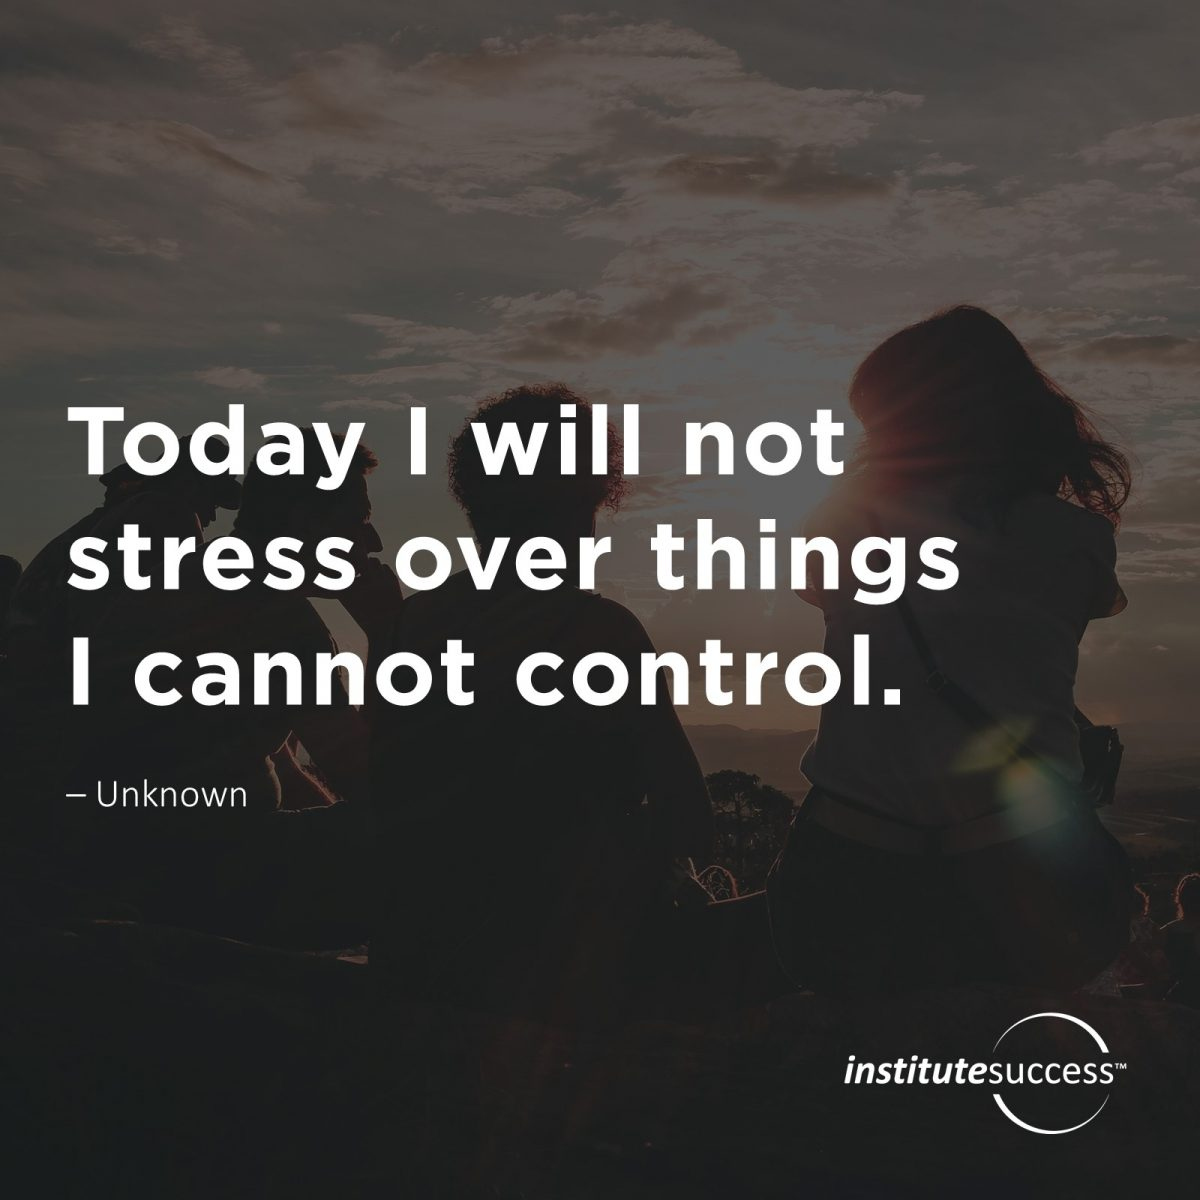 Today I will not stress over things I cannot control. – Unknown